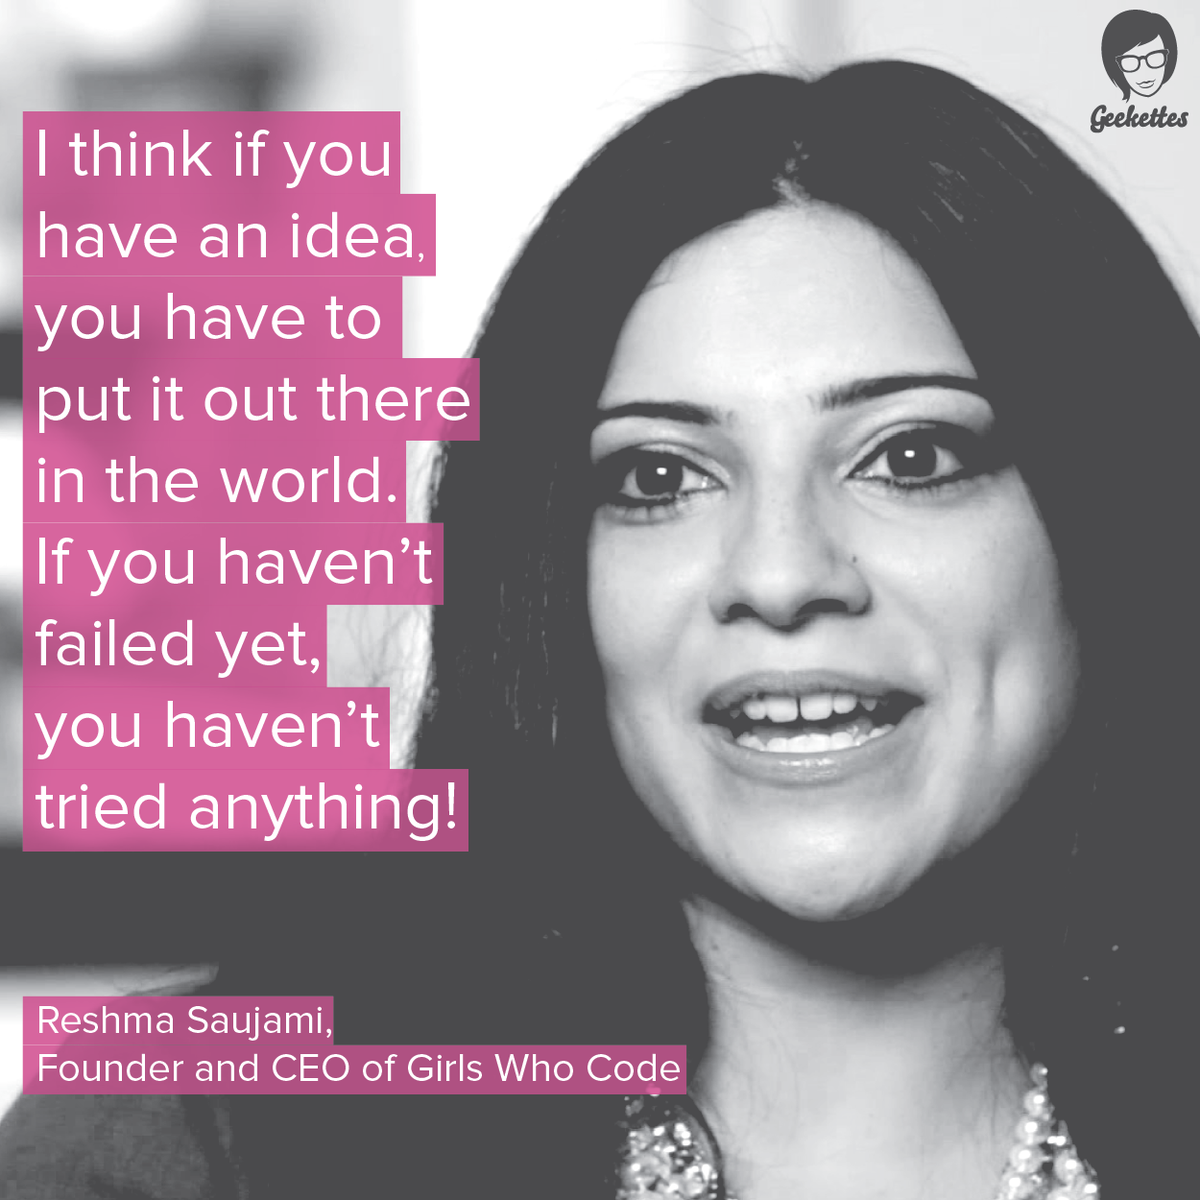 Have a nice week! #quotes #womenintech cc: @GirlsWhoCode http://t.co/UrNUg9azeP